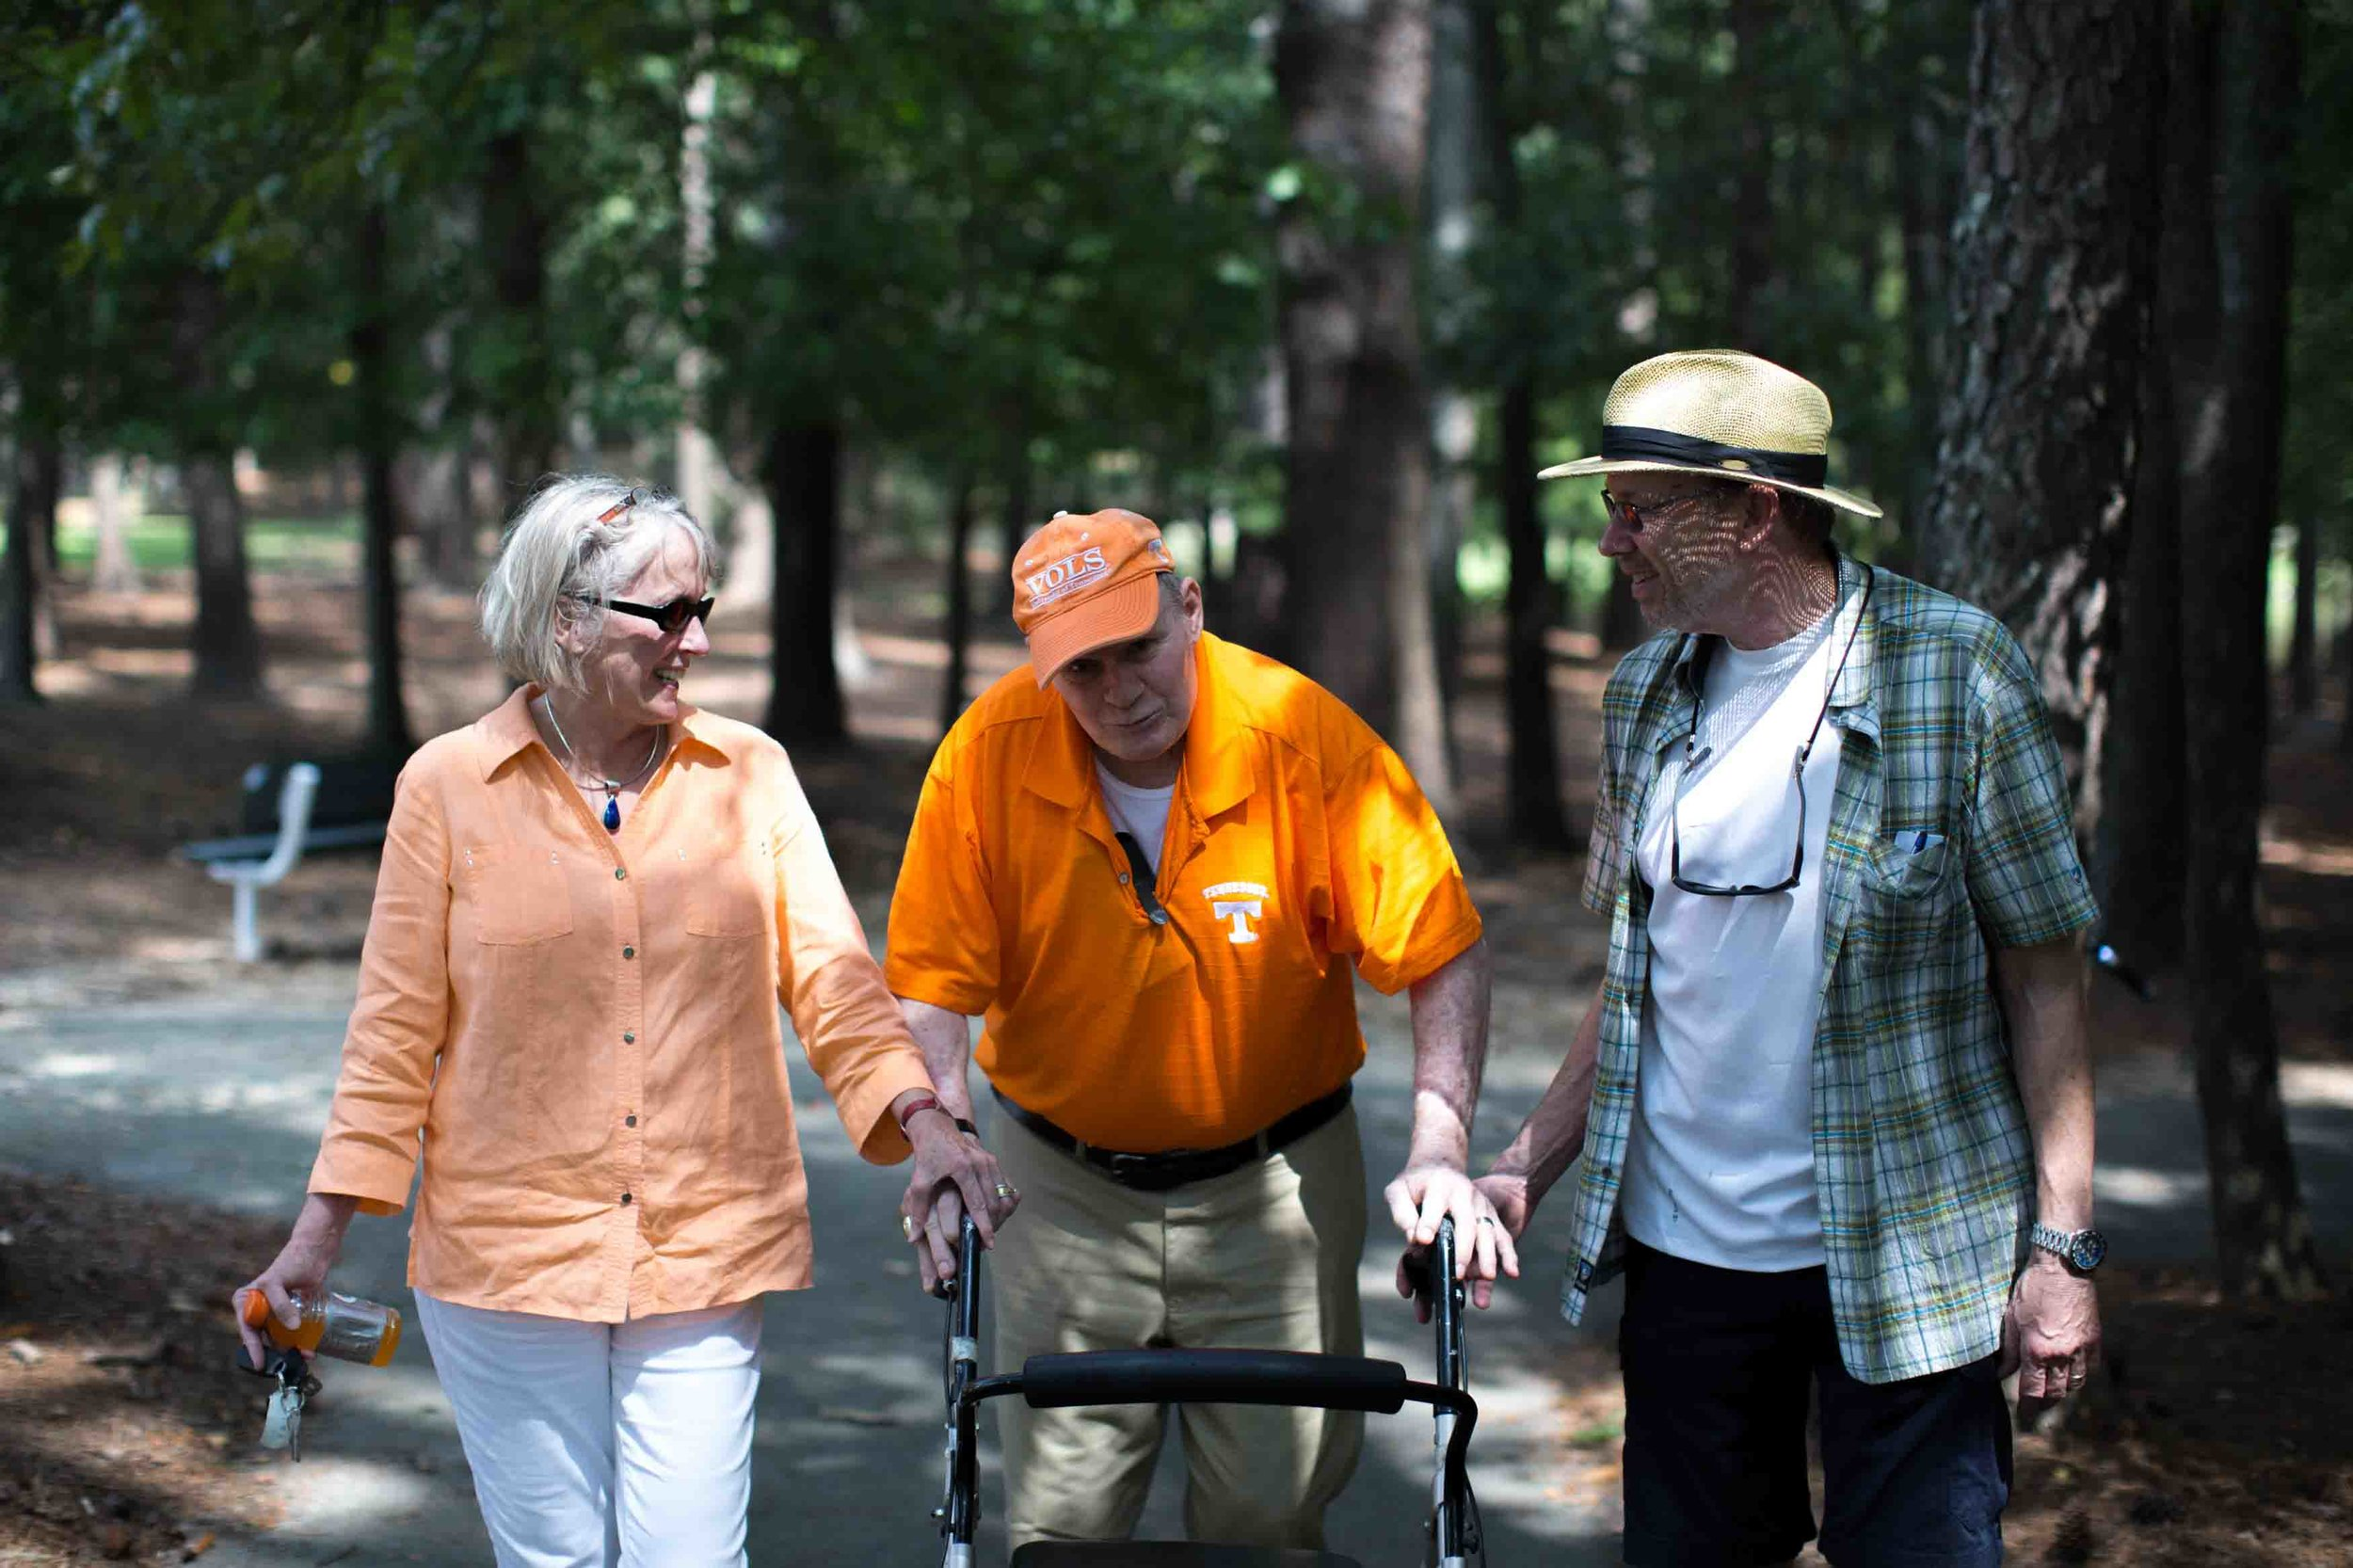 Walter Chadwick, center, who was a star running back at the University of Tennessee, walks with his friend and University of Tennessee alum Ellen Morrison, left, and former Wills High School football player Keith Miller in Laurel Park, Sunday, Aug. 28, 2016, in Marietta, Ga. Chadwick was named head coach of Wills High School in 1971, but after only being on the job just two weeks, a Wells Fargo armored van slammed into him leaving Chadwick permanently brain damaged. Chadwick recently gathered with friends and former students, many of whom thought he was dead.(Branden Camp for The Atlanta-Journal Constitution)